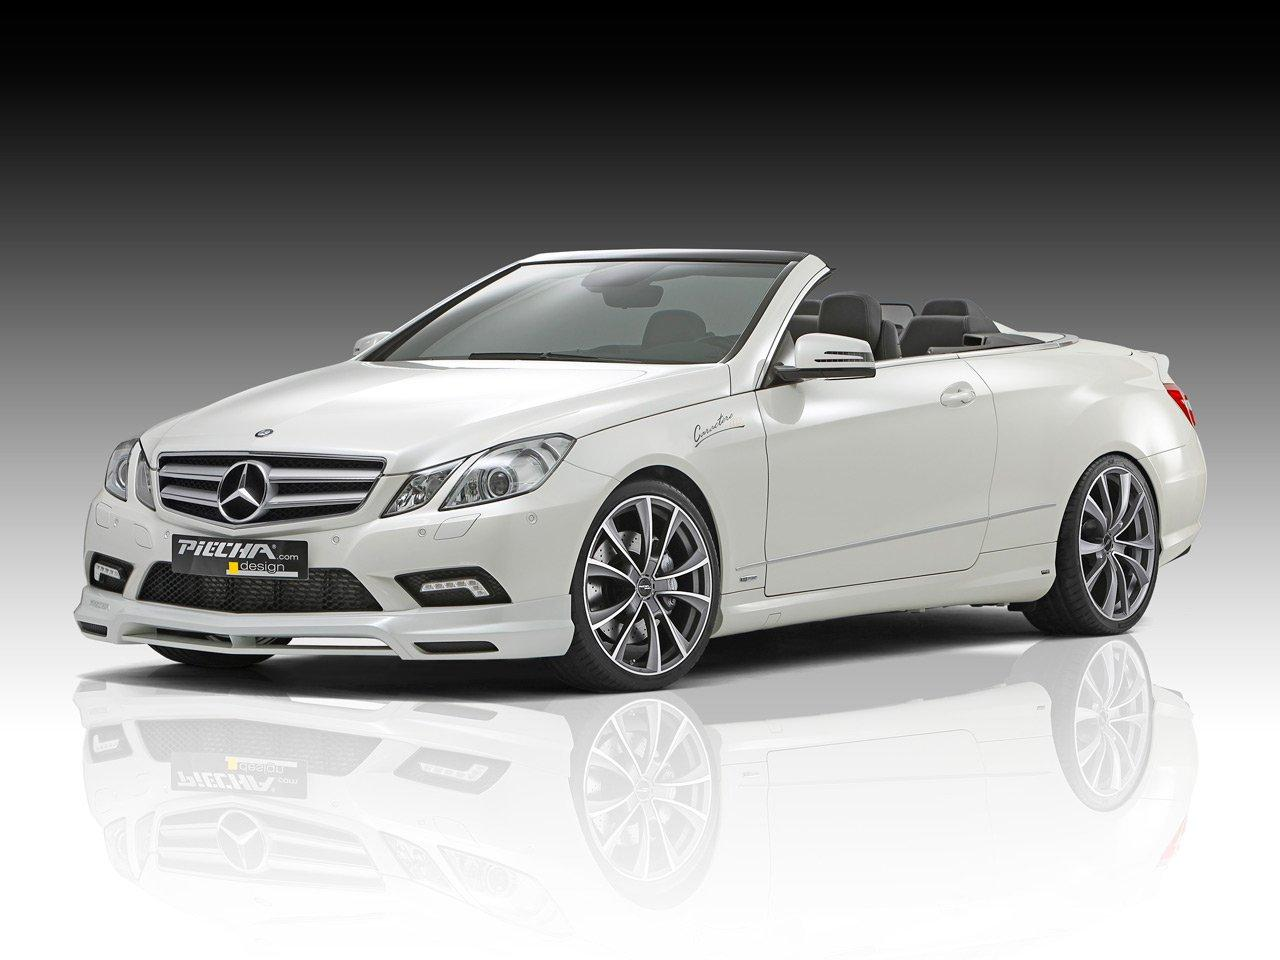 Piecha Design prepares Mercedes E-Class tuning